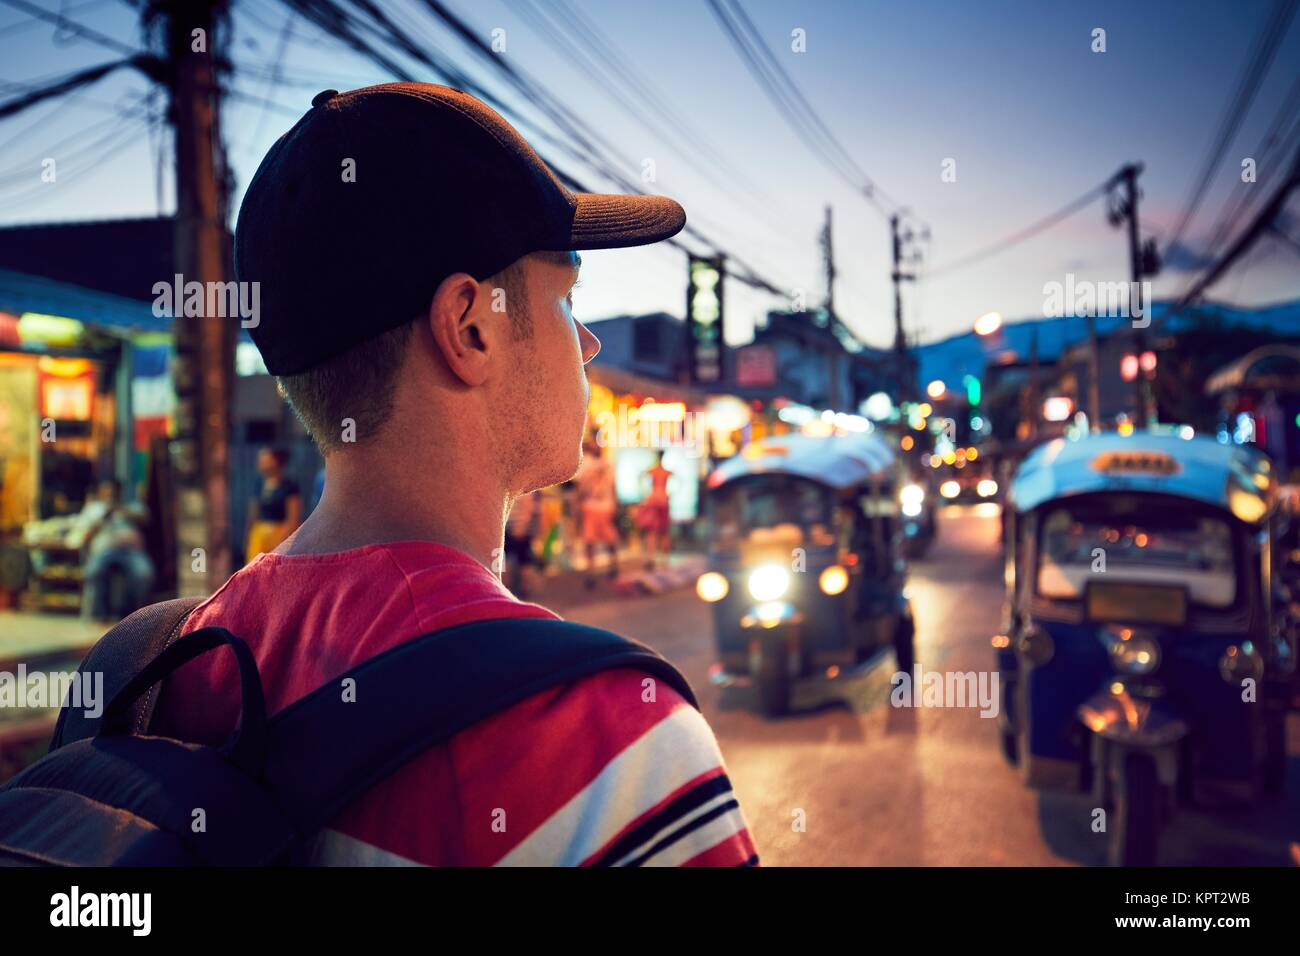 Young man walking on the busy street full of shops - Chiang Mai, Thailand - Stock Image